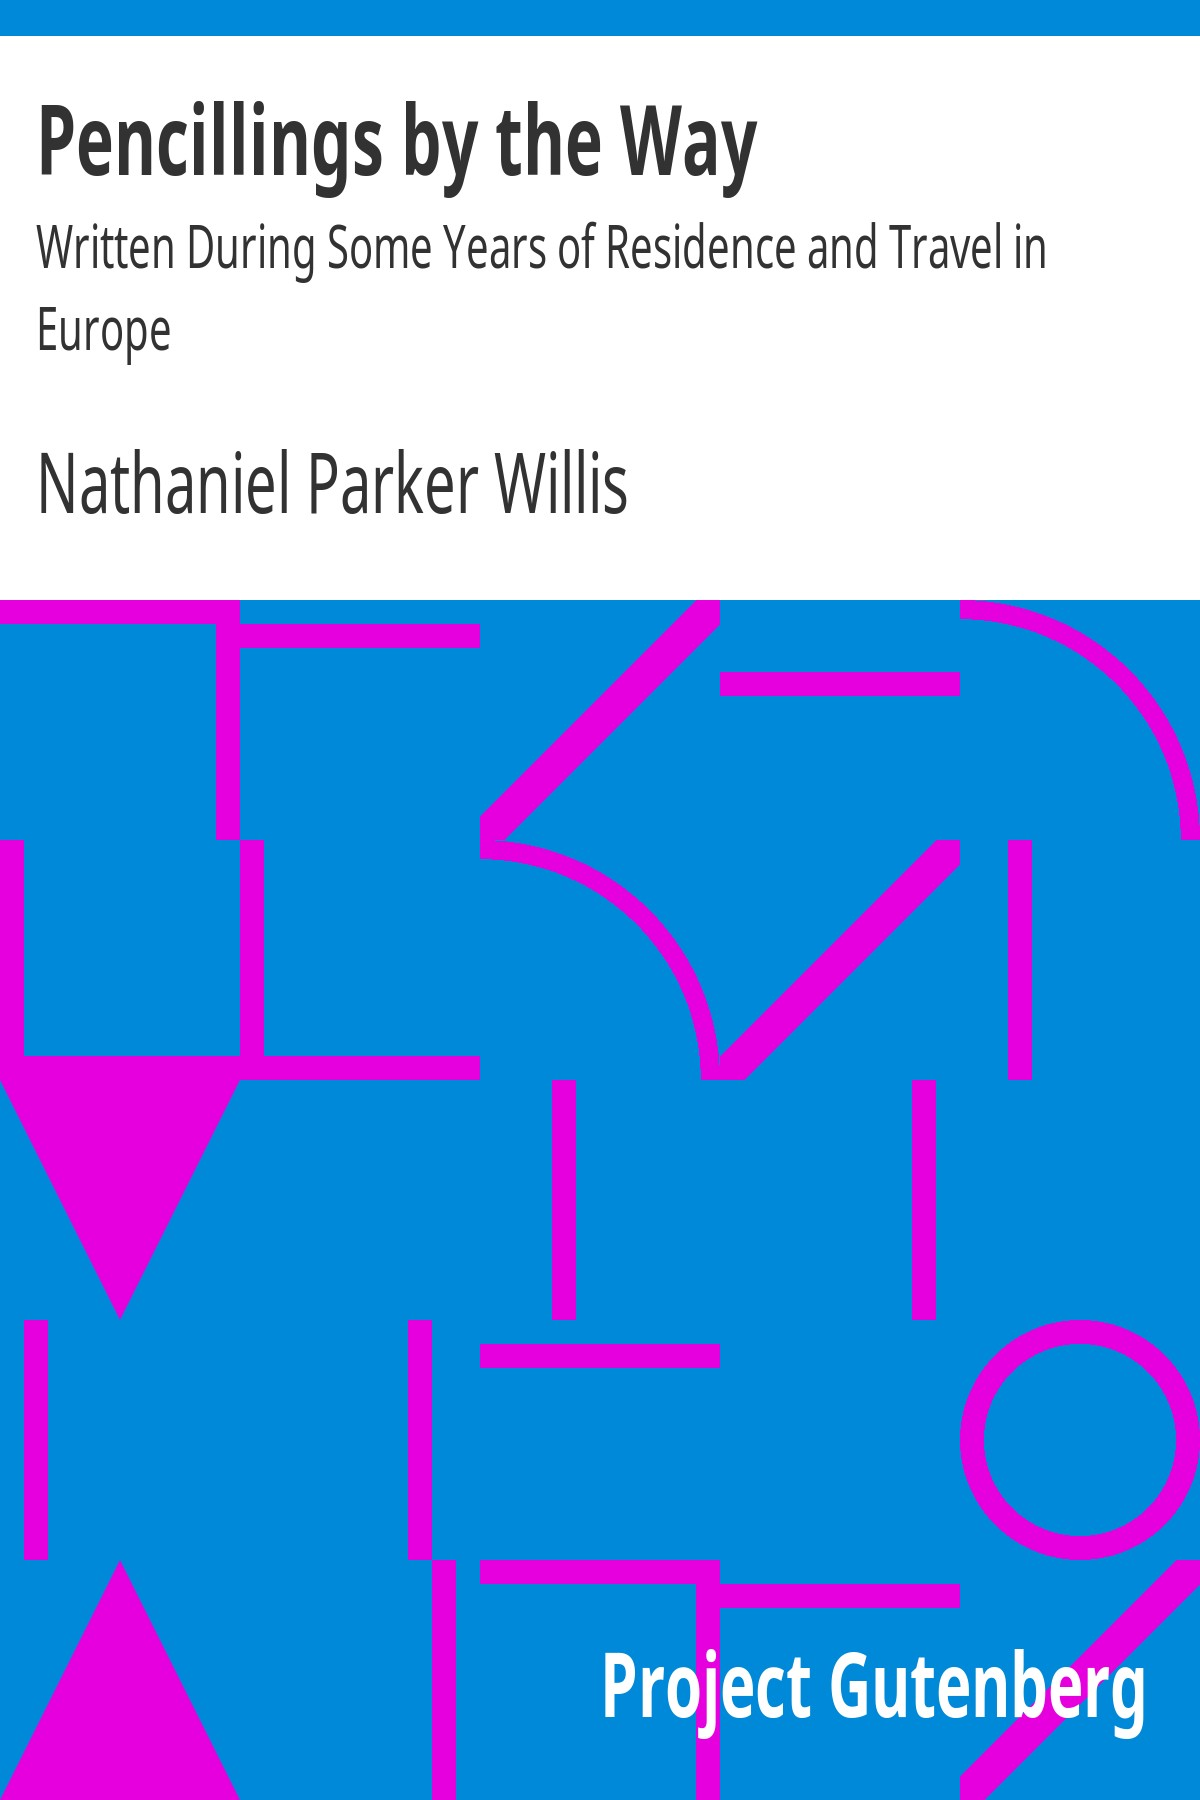 Nathaniel Parker Willis Pencillings by the Way Written During Some Years of Residence and Travel in Europe